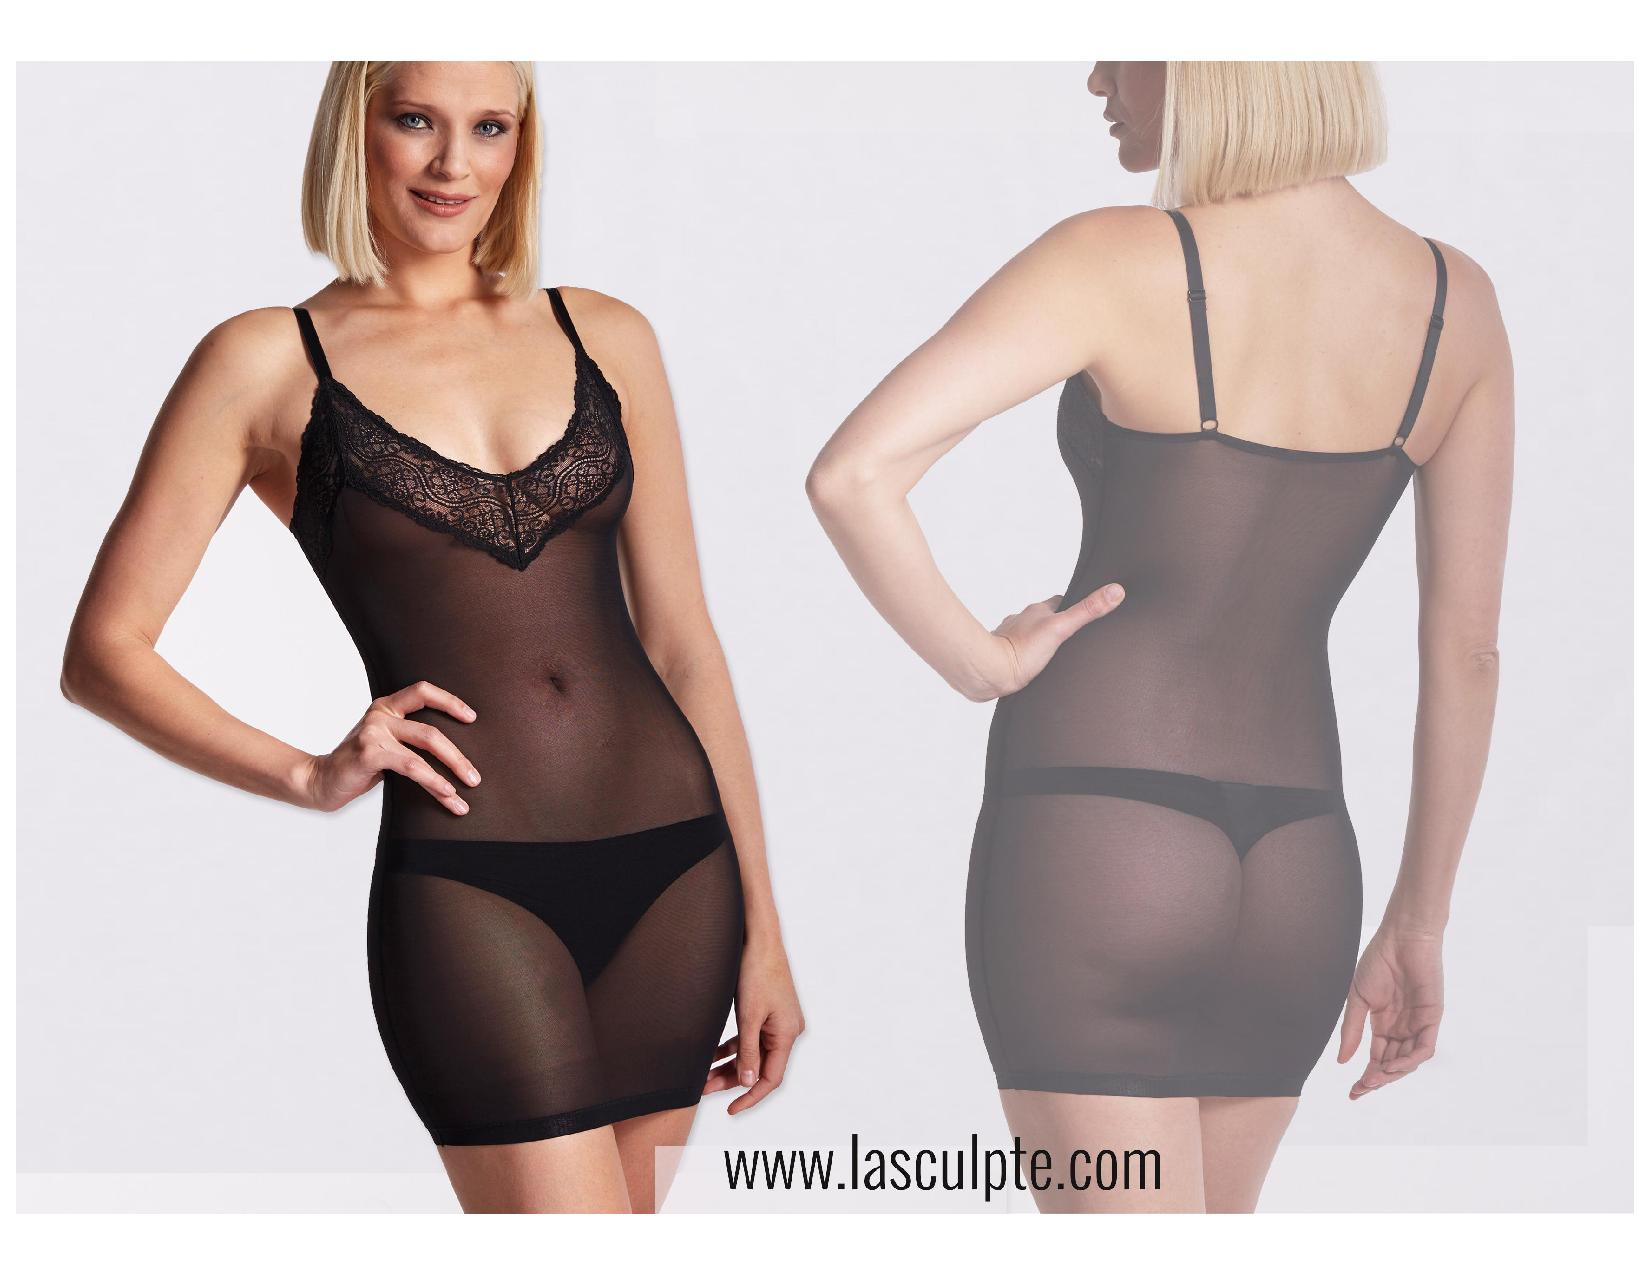 Lasculpte lookbook - Shapewear-page-010